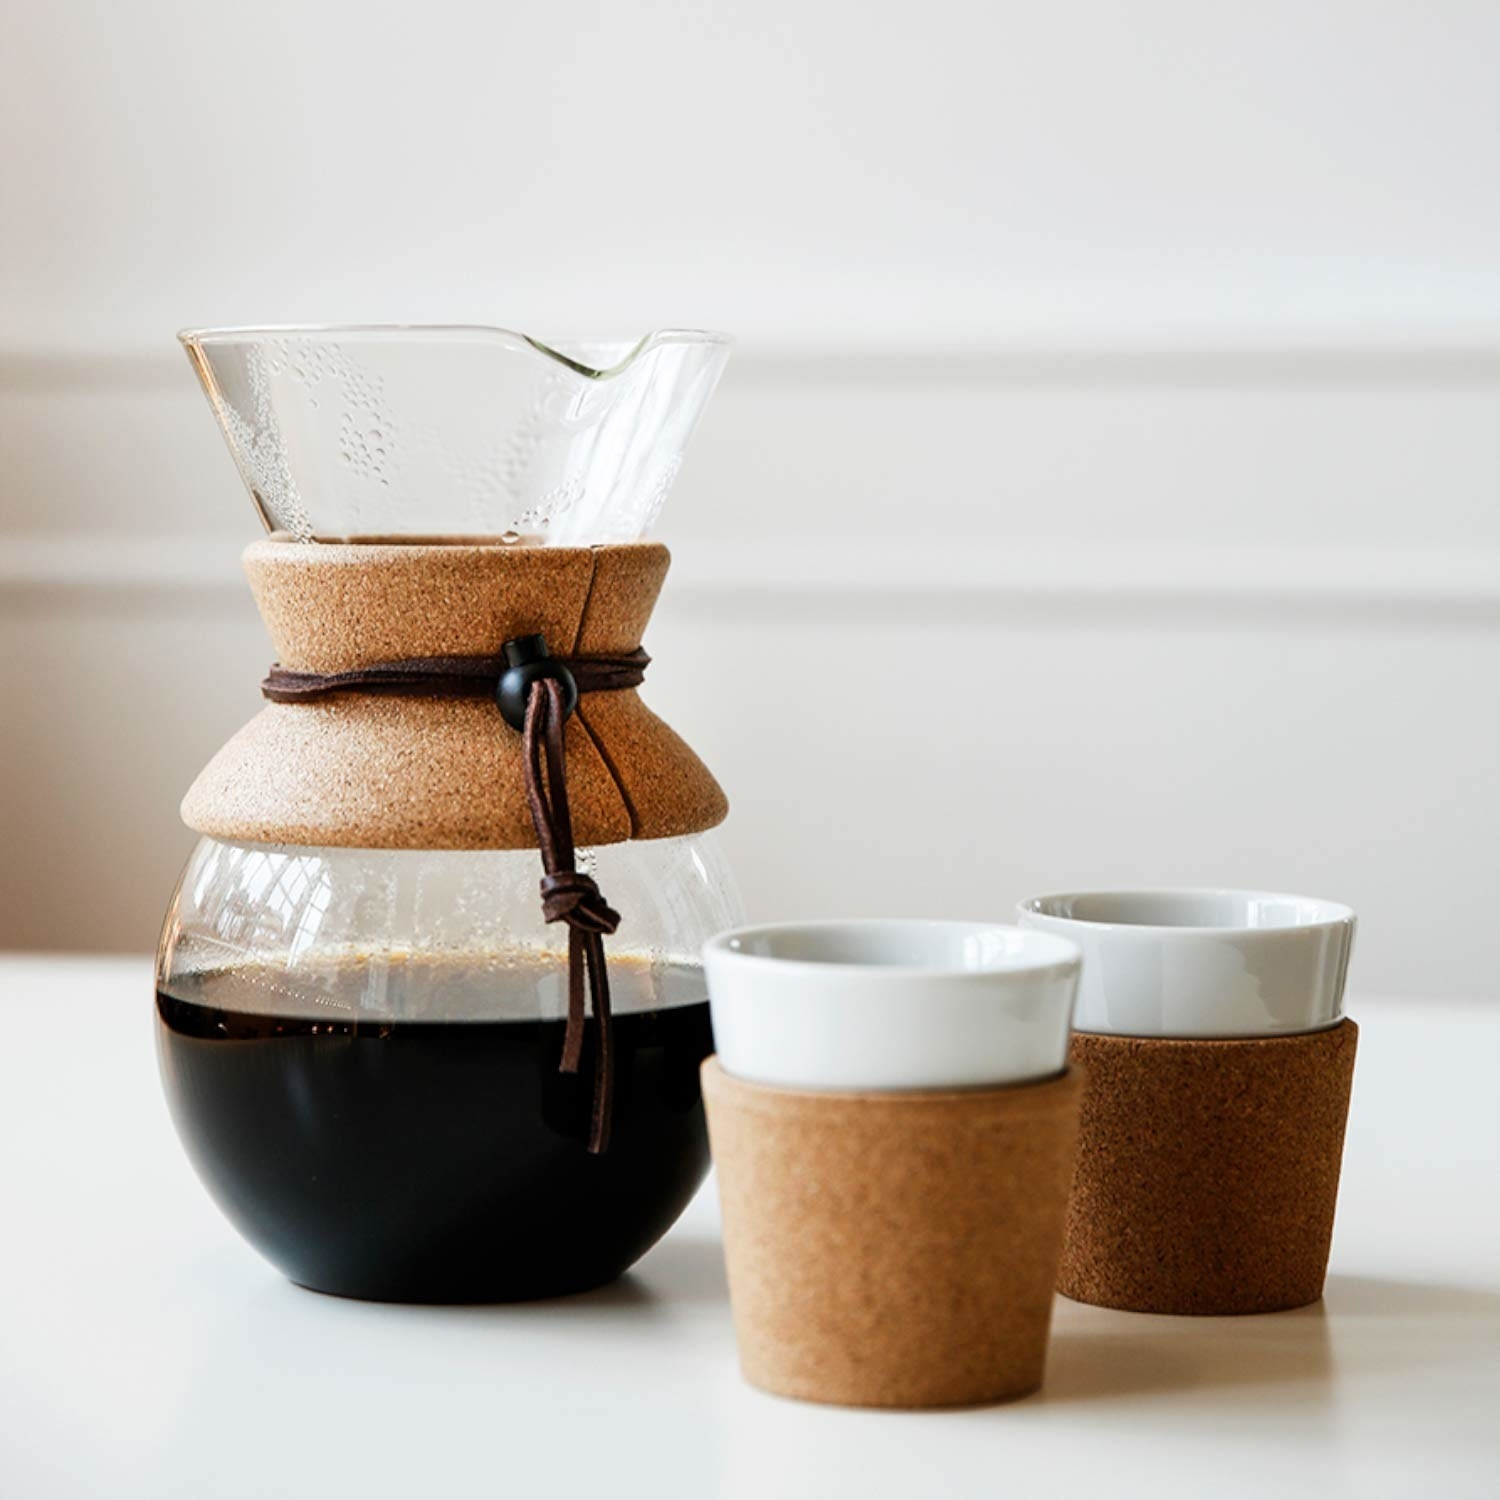 the clear coffee maker